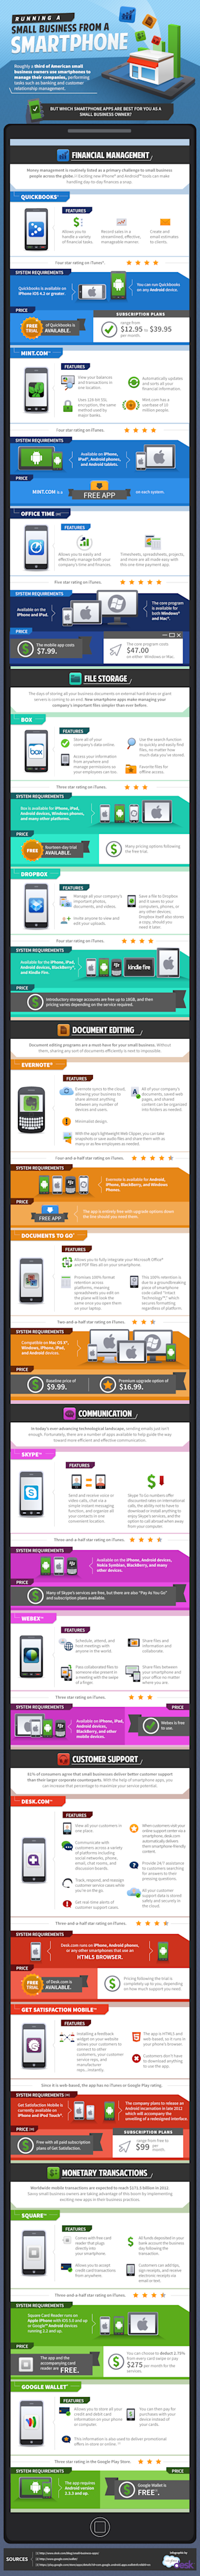 Can Your Smartphone Run Your Business? [Infographic] image Small Business Apps